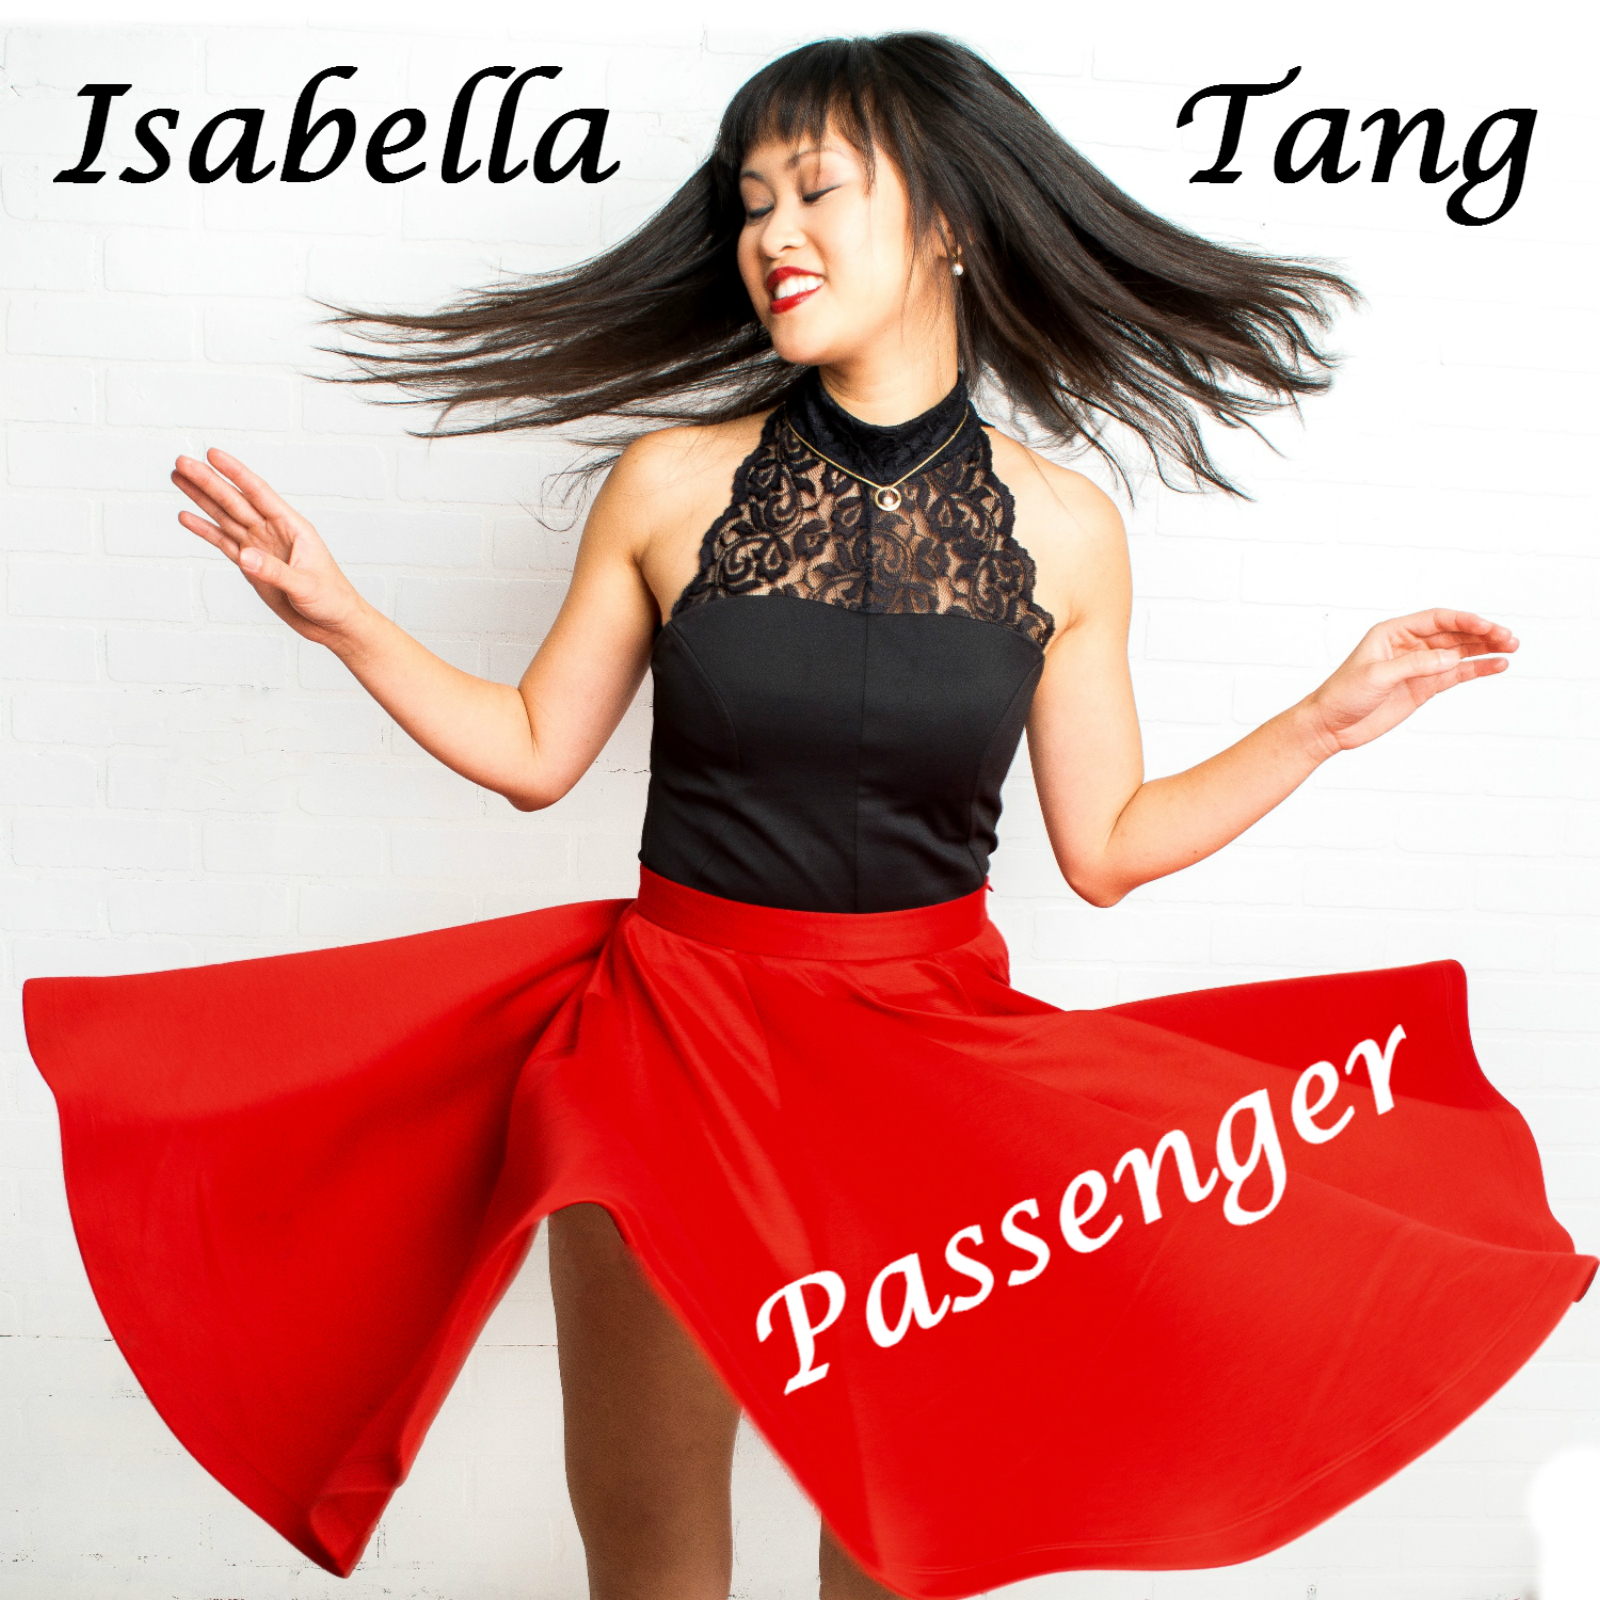 1600x1600 Passenger single album cover.jpg